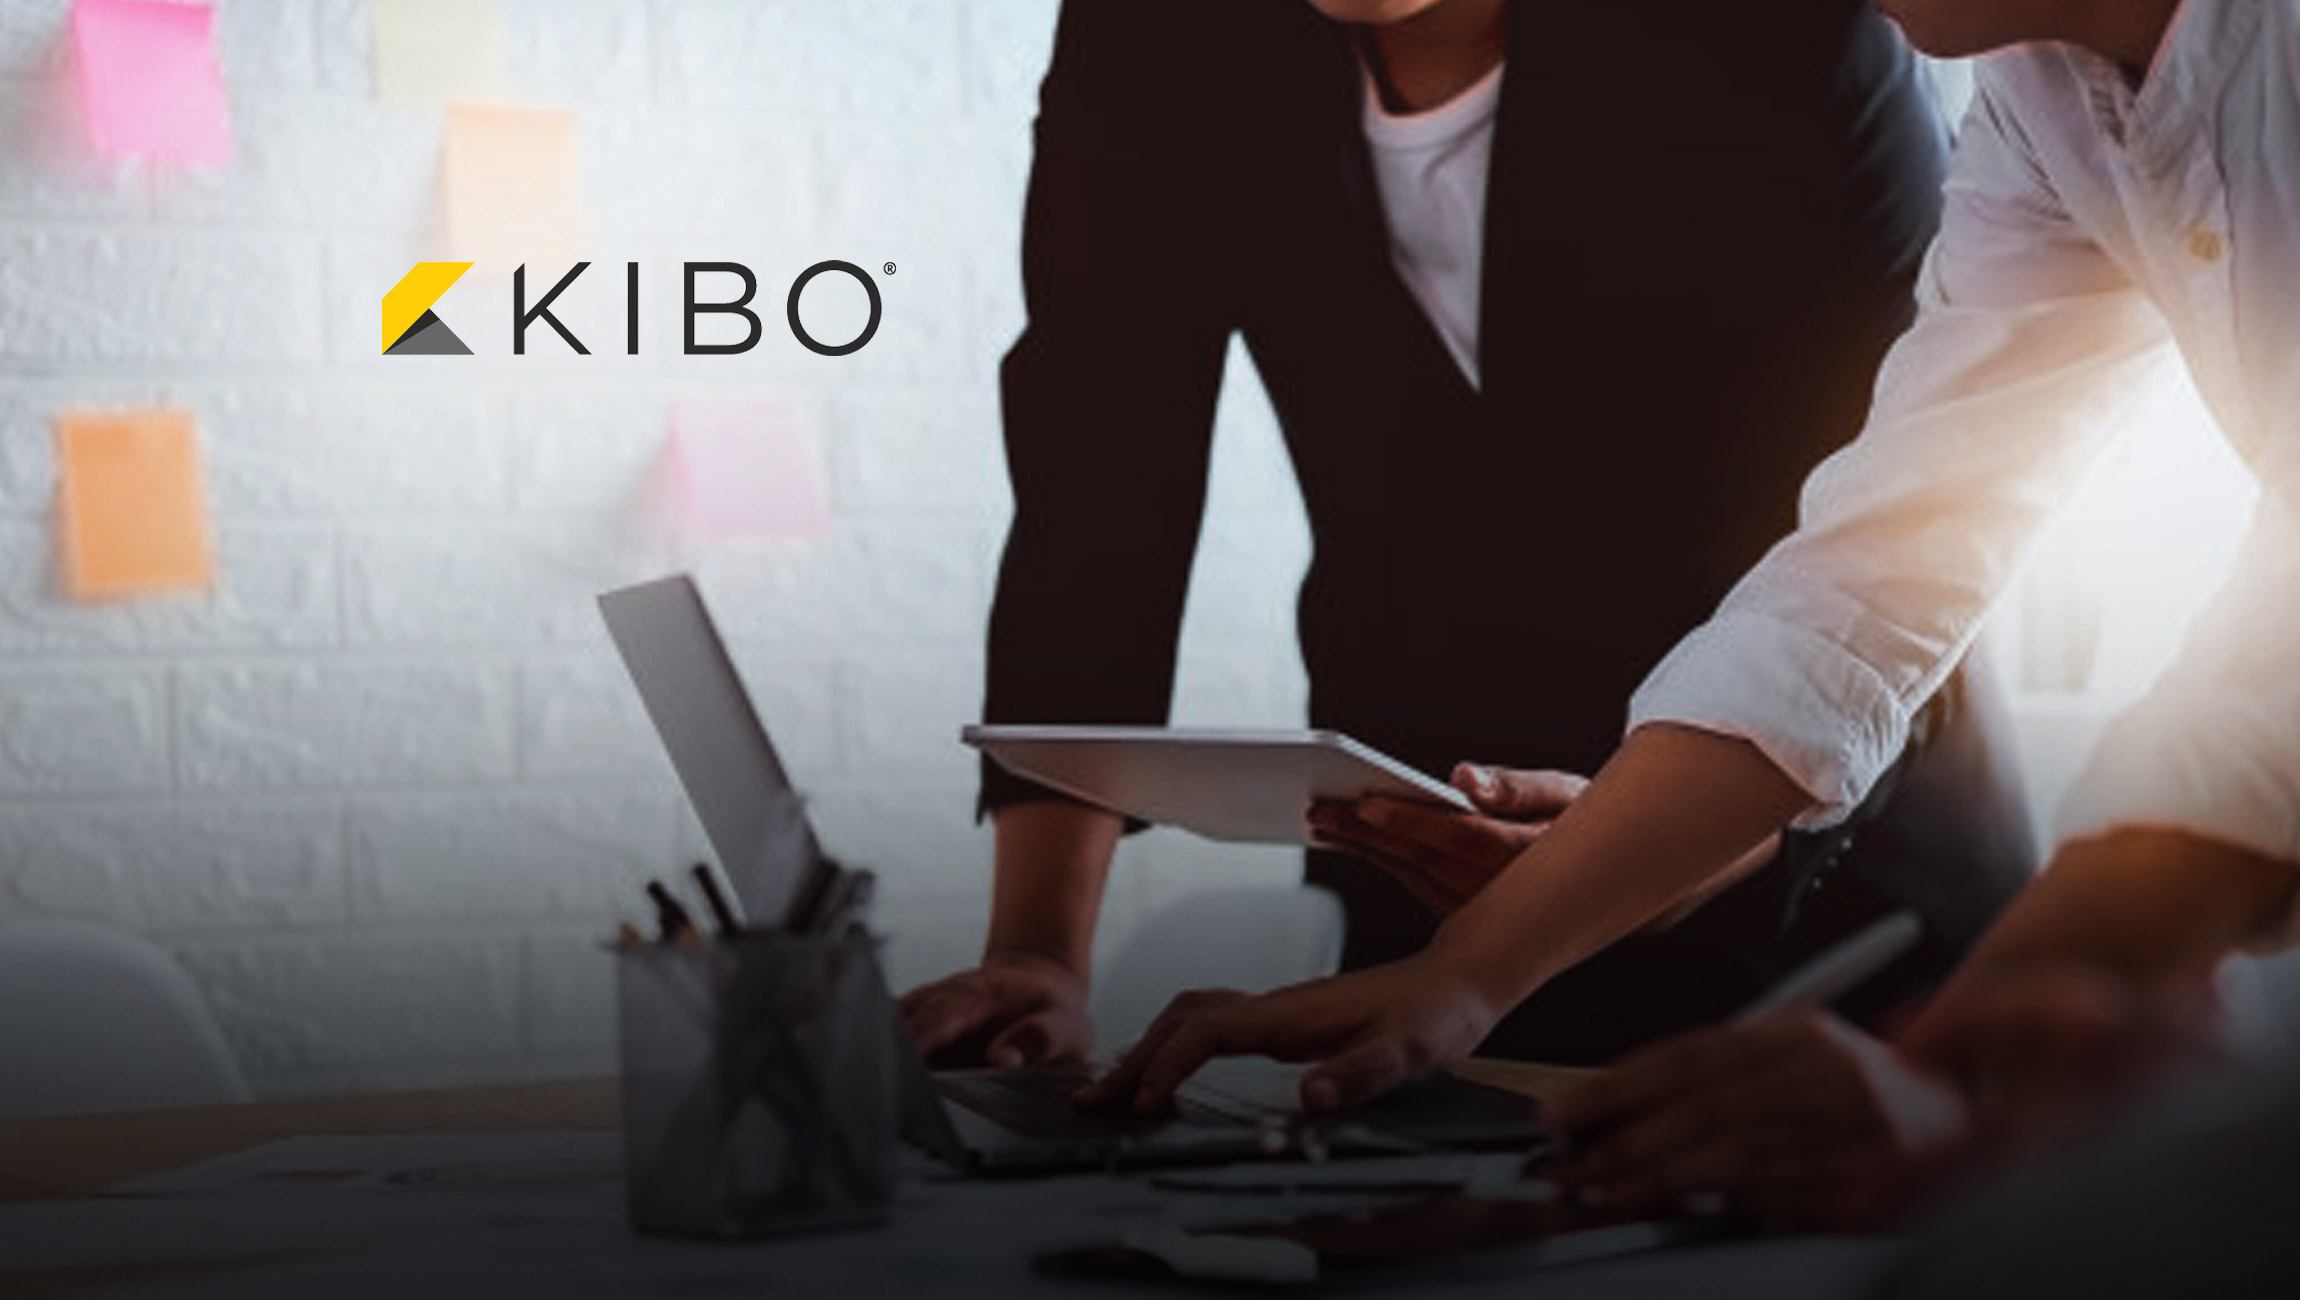 Kibo Announces Curbside Pickup to Help Retailers Meet Demands of COVID-19